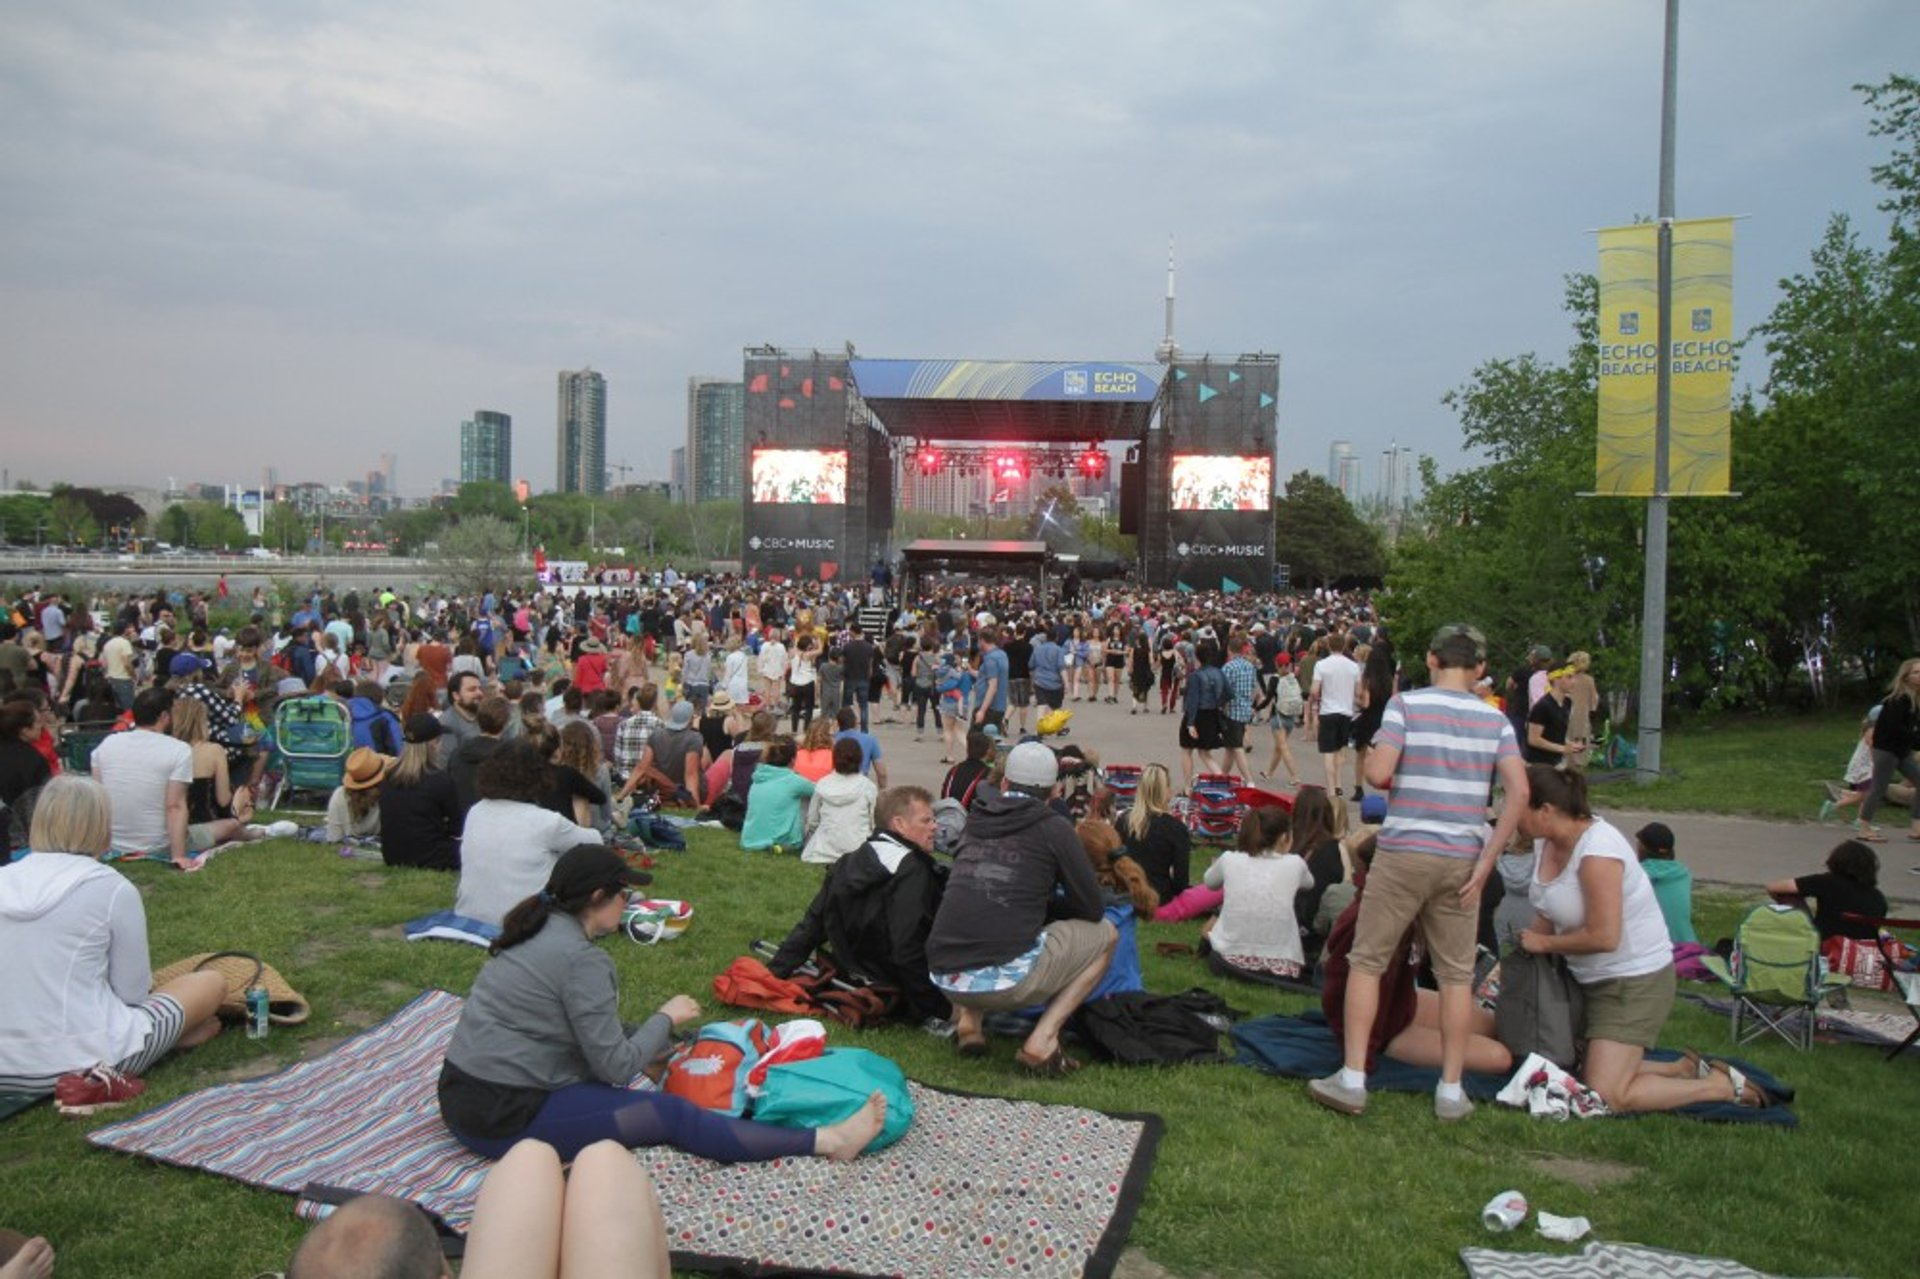 CBC Music Festival in Toronto 2020 - Best Time